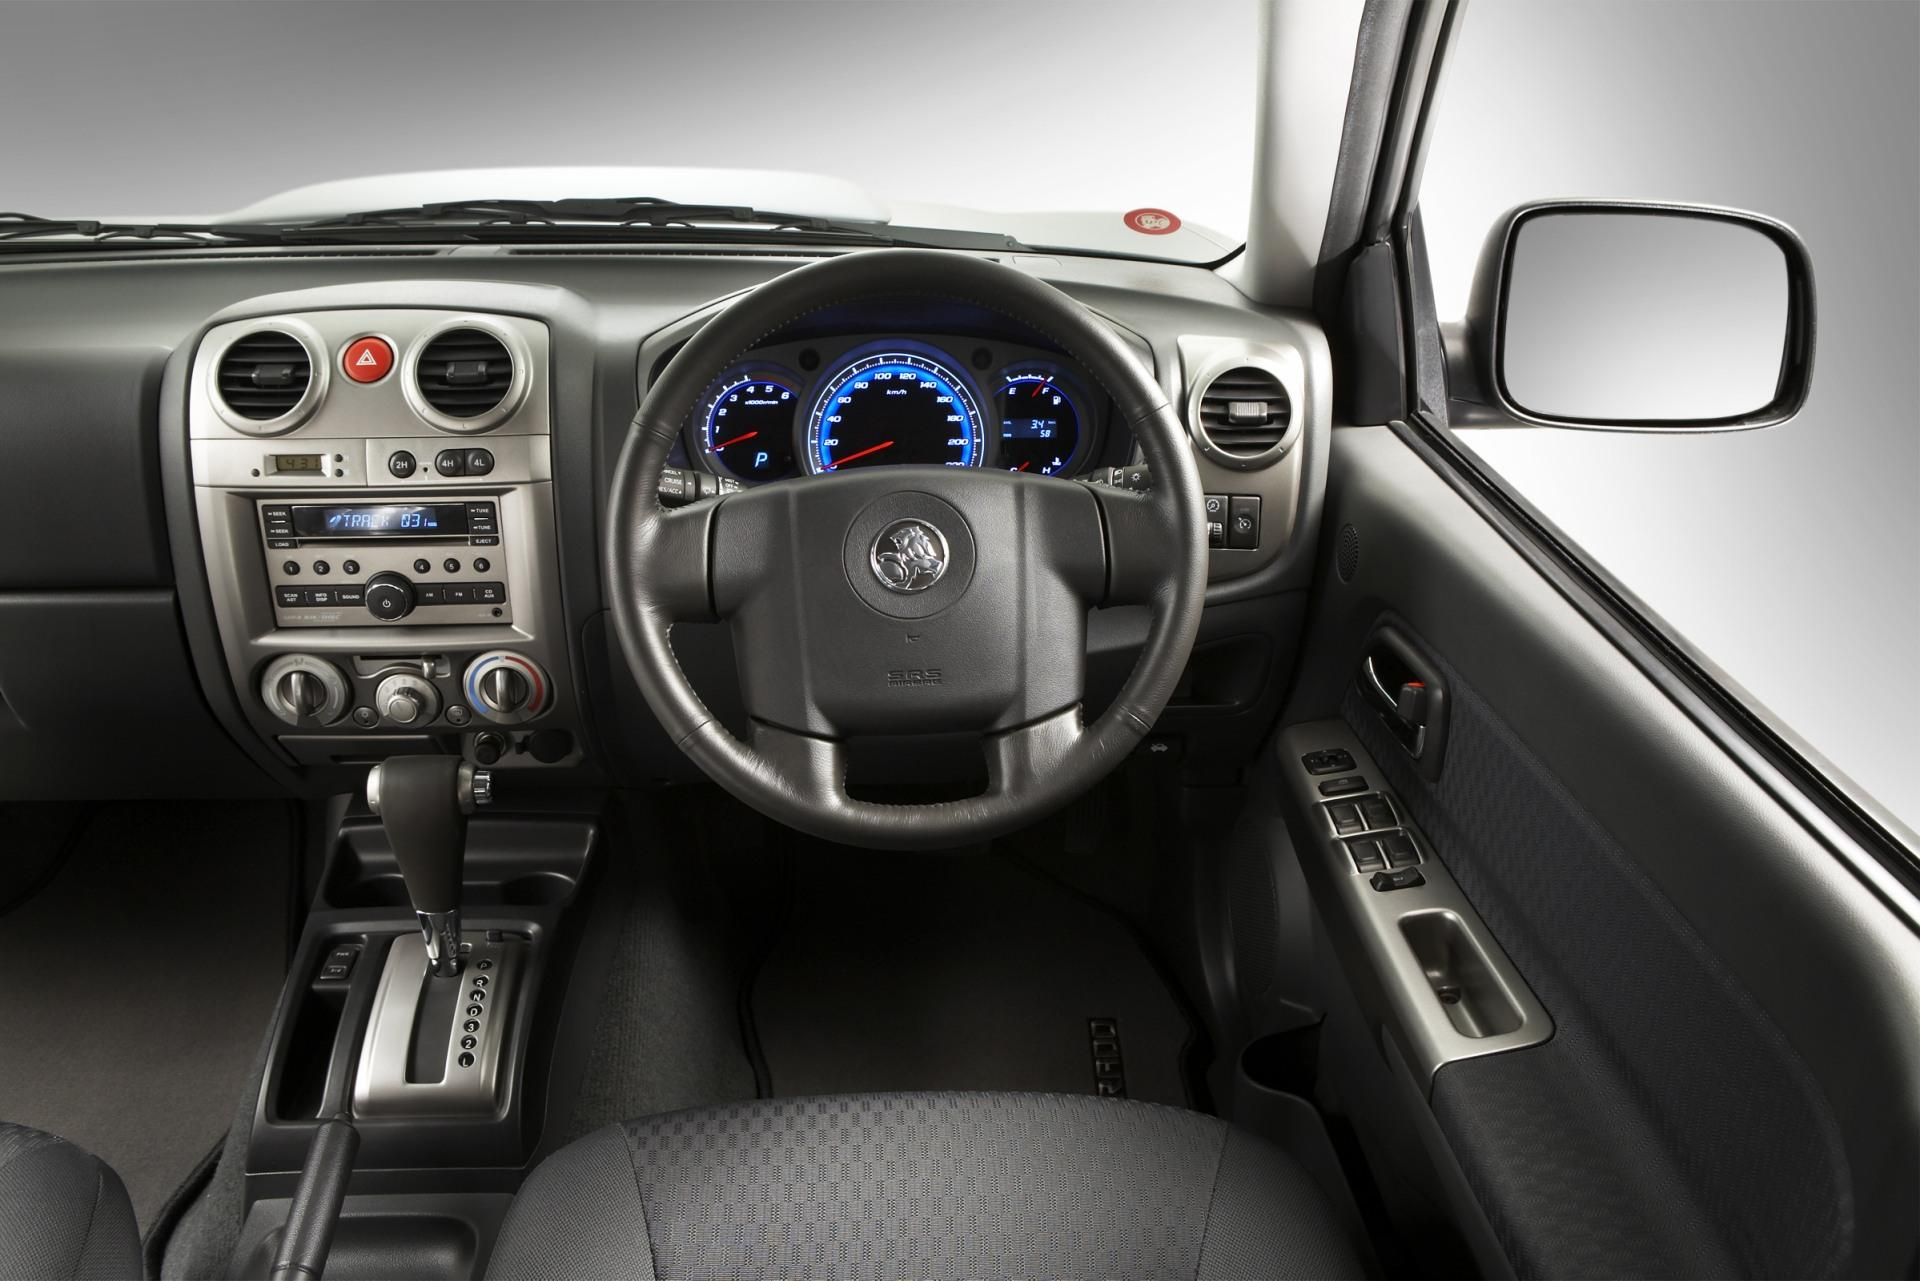 2009 Holden Colorado #2